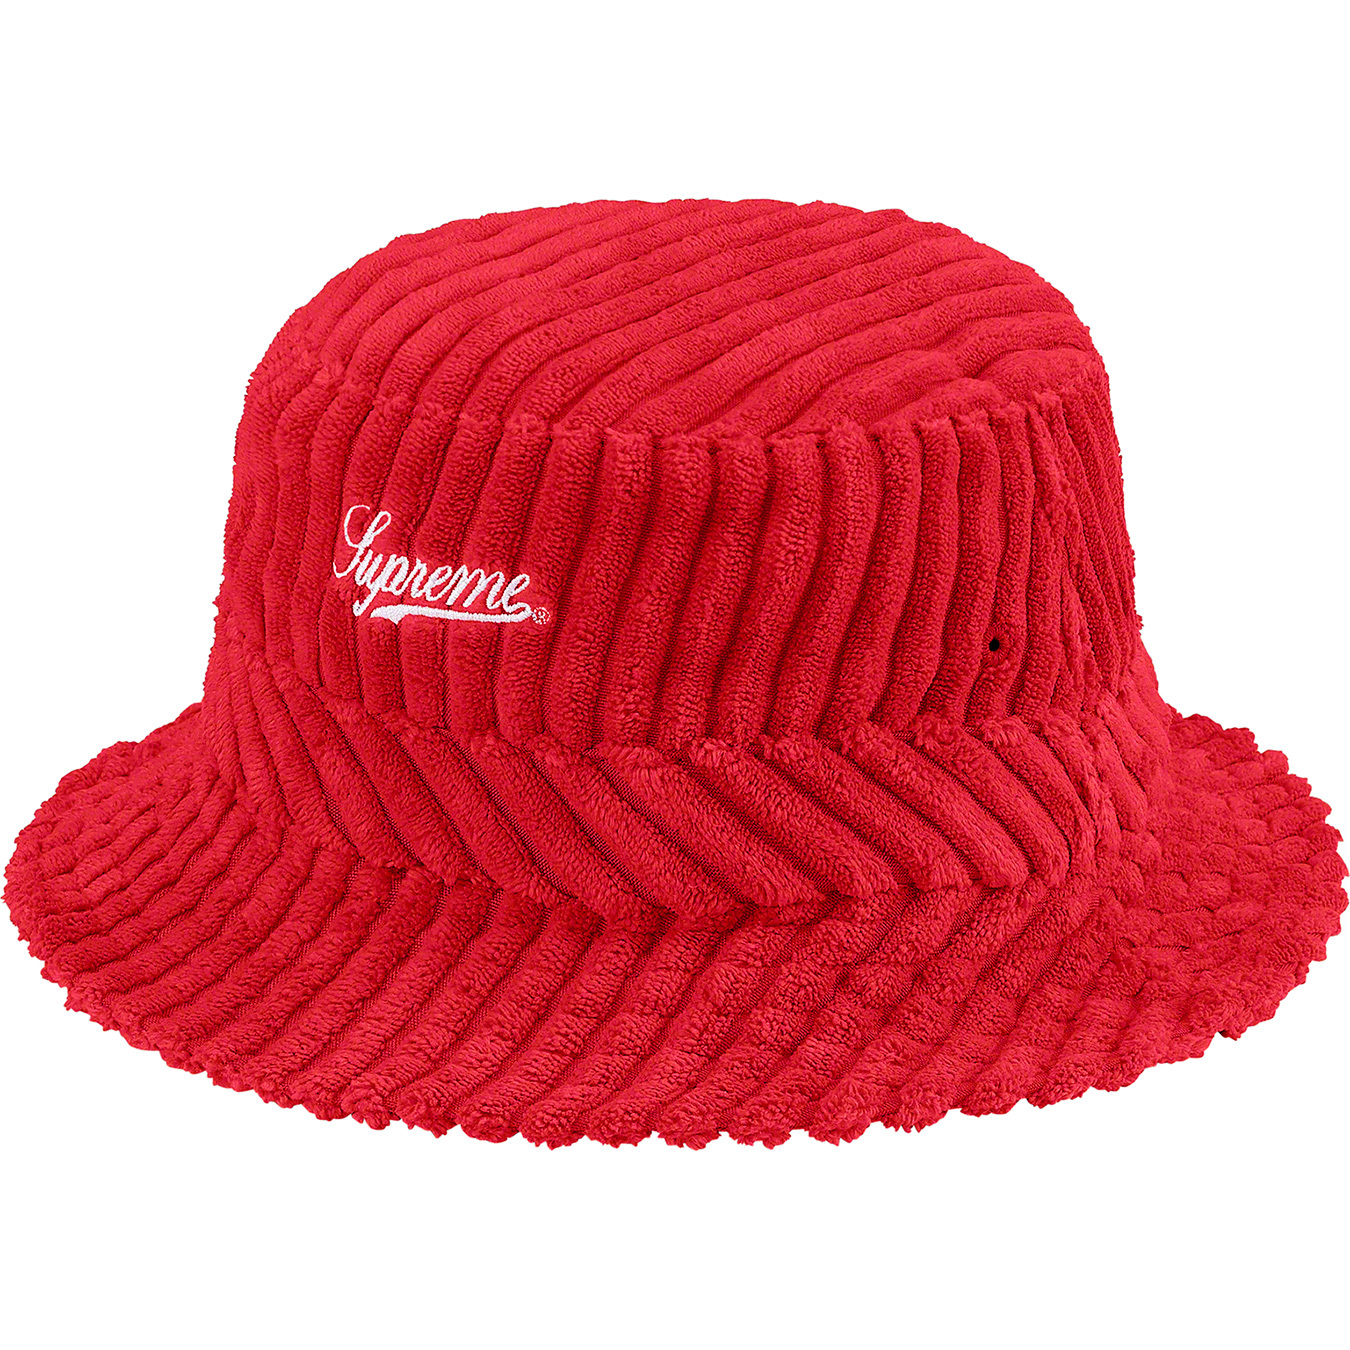 supreme-21ss-spring-summer-terry-corduroy-crusher